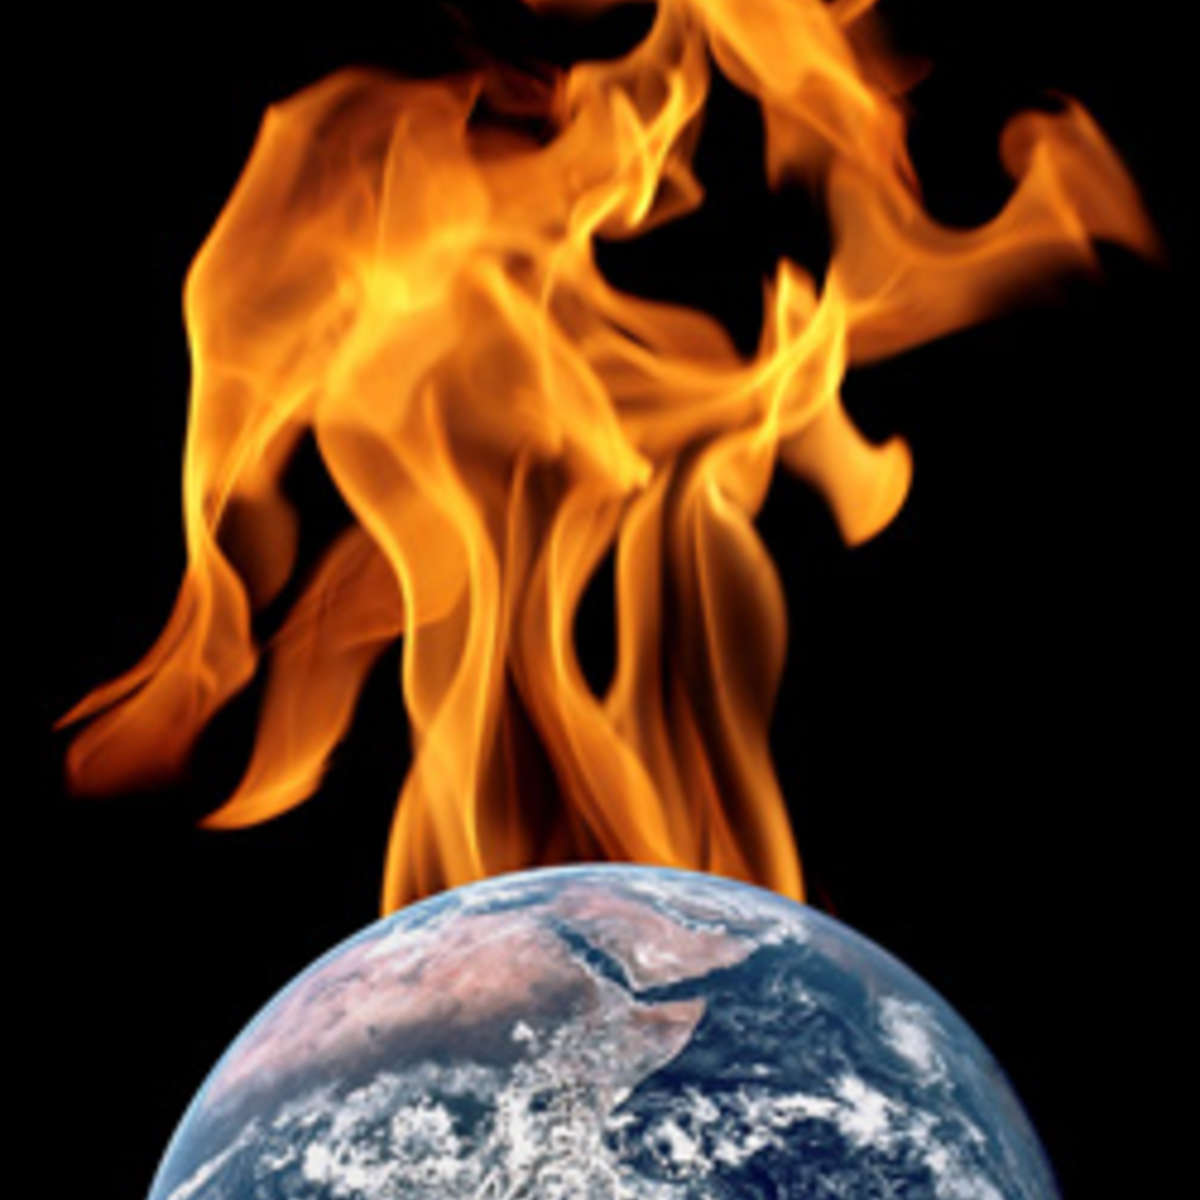 earthonfire_250_3.jpg